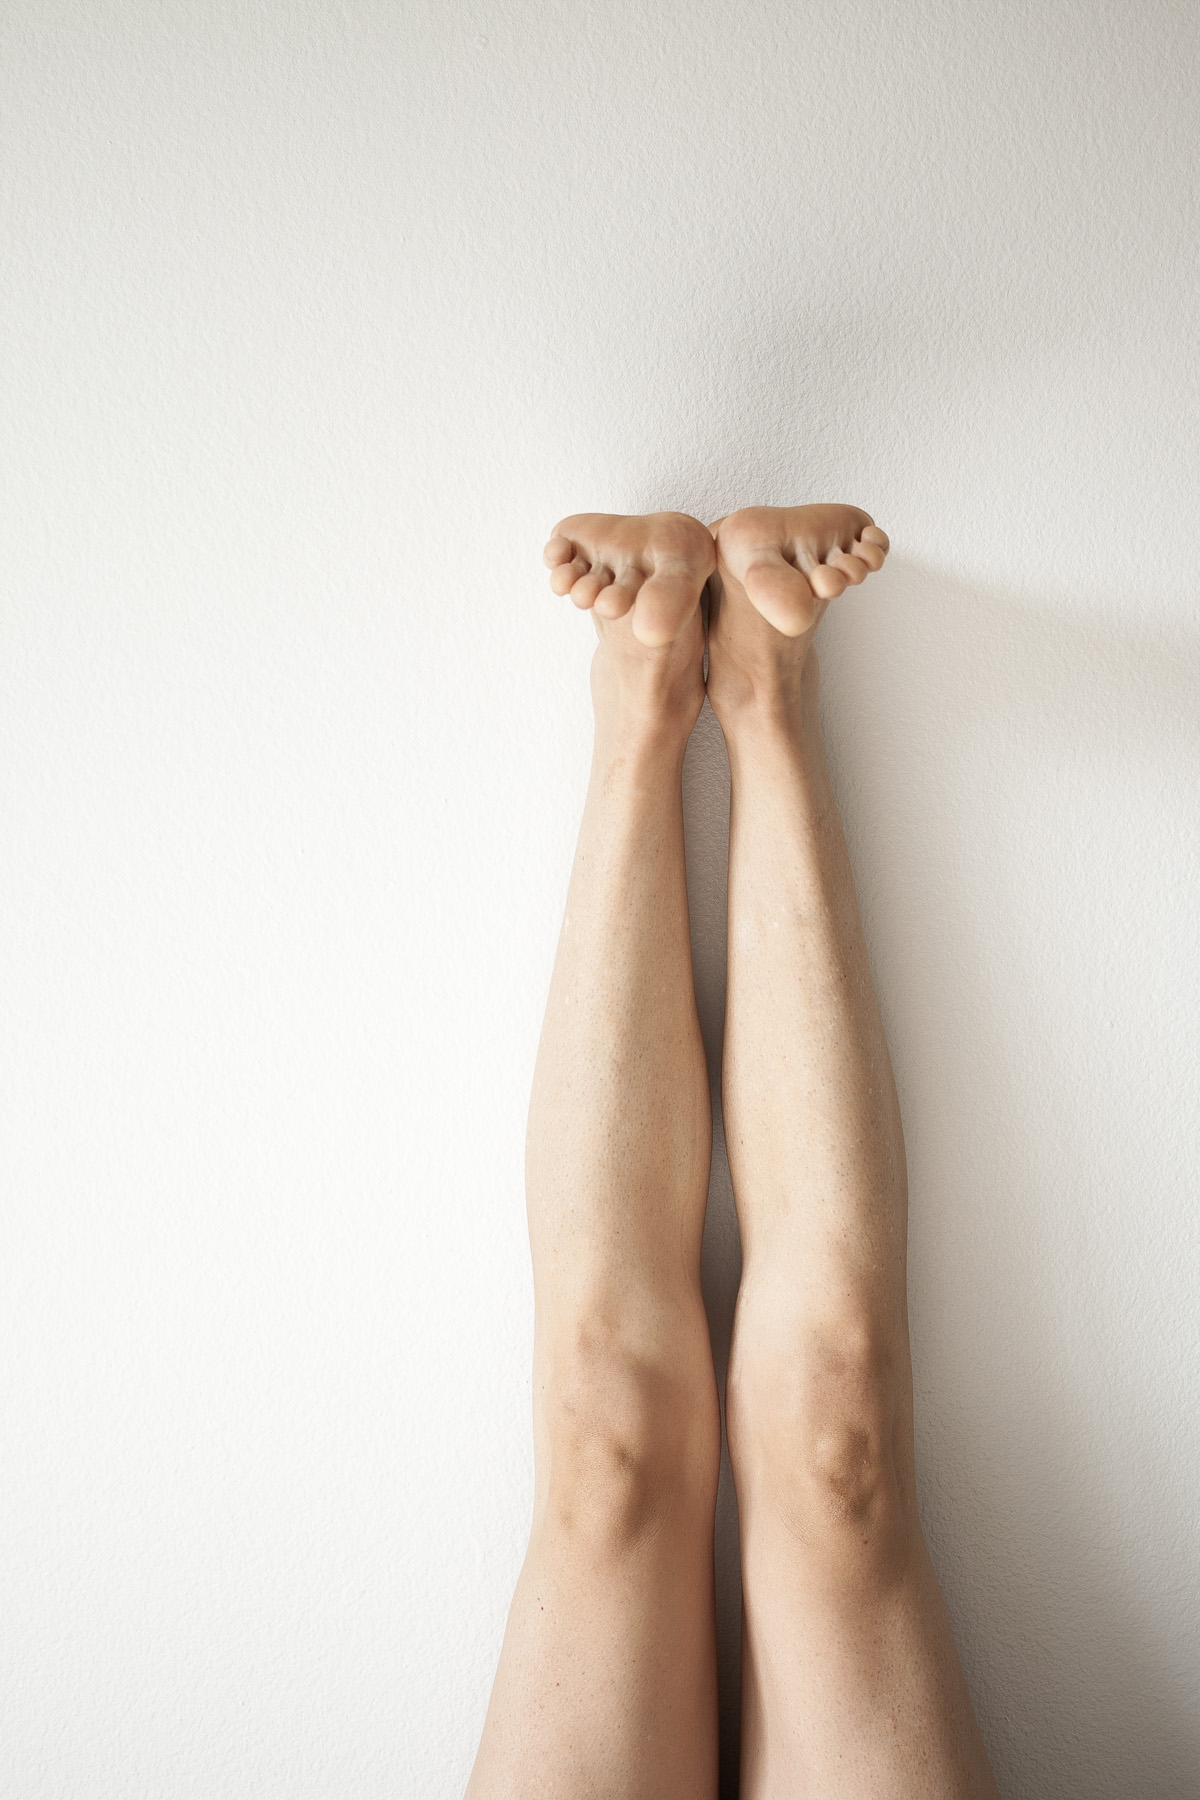 Restful Sleep Tips: Legs Up the Wall Restorative Yoga Pose